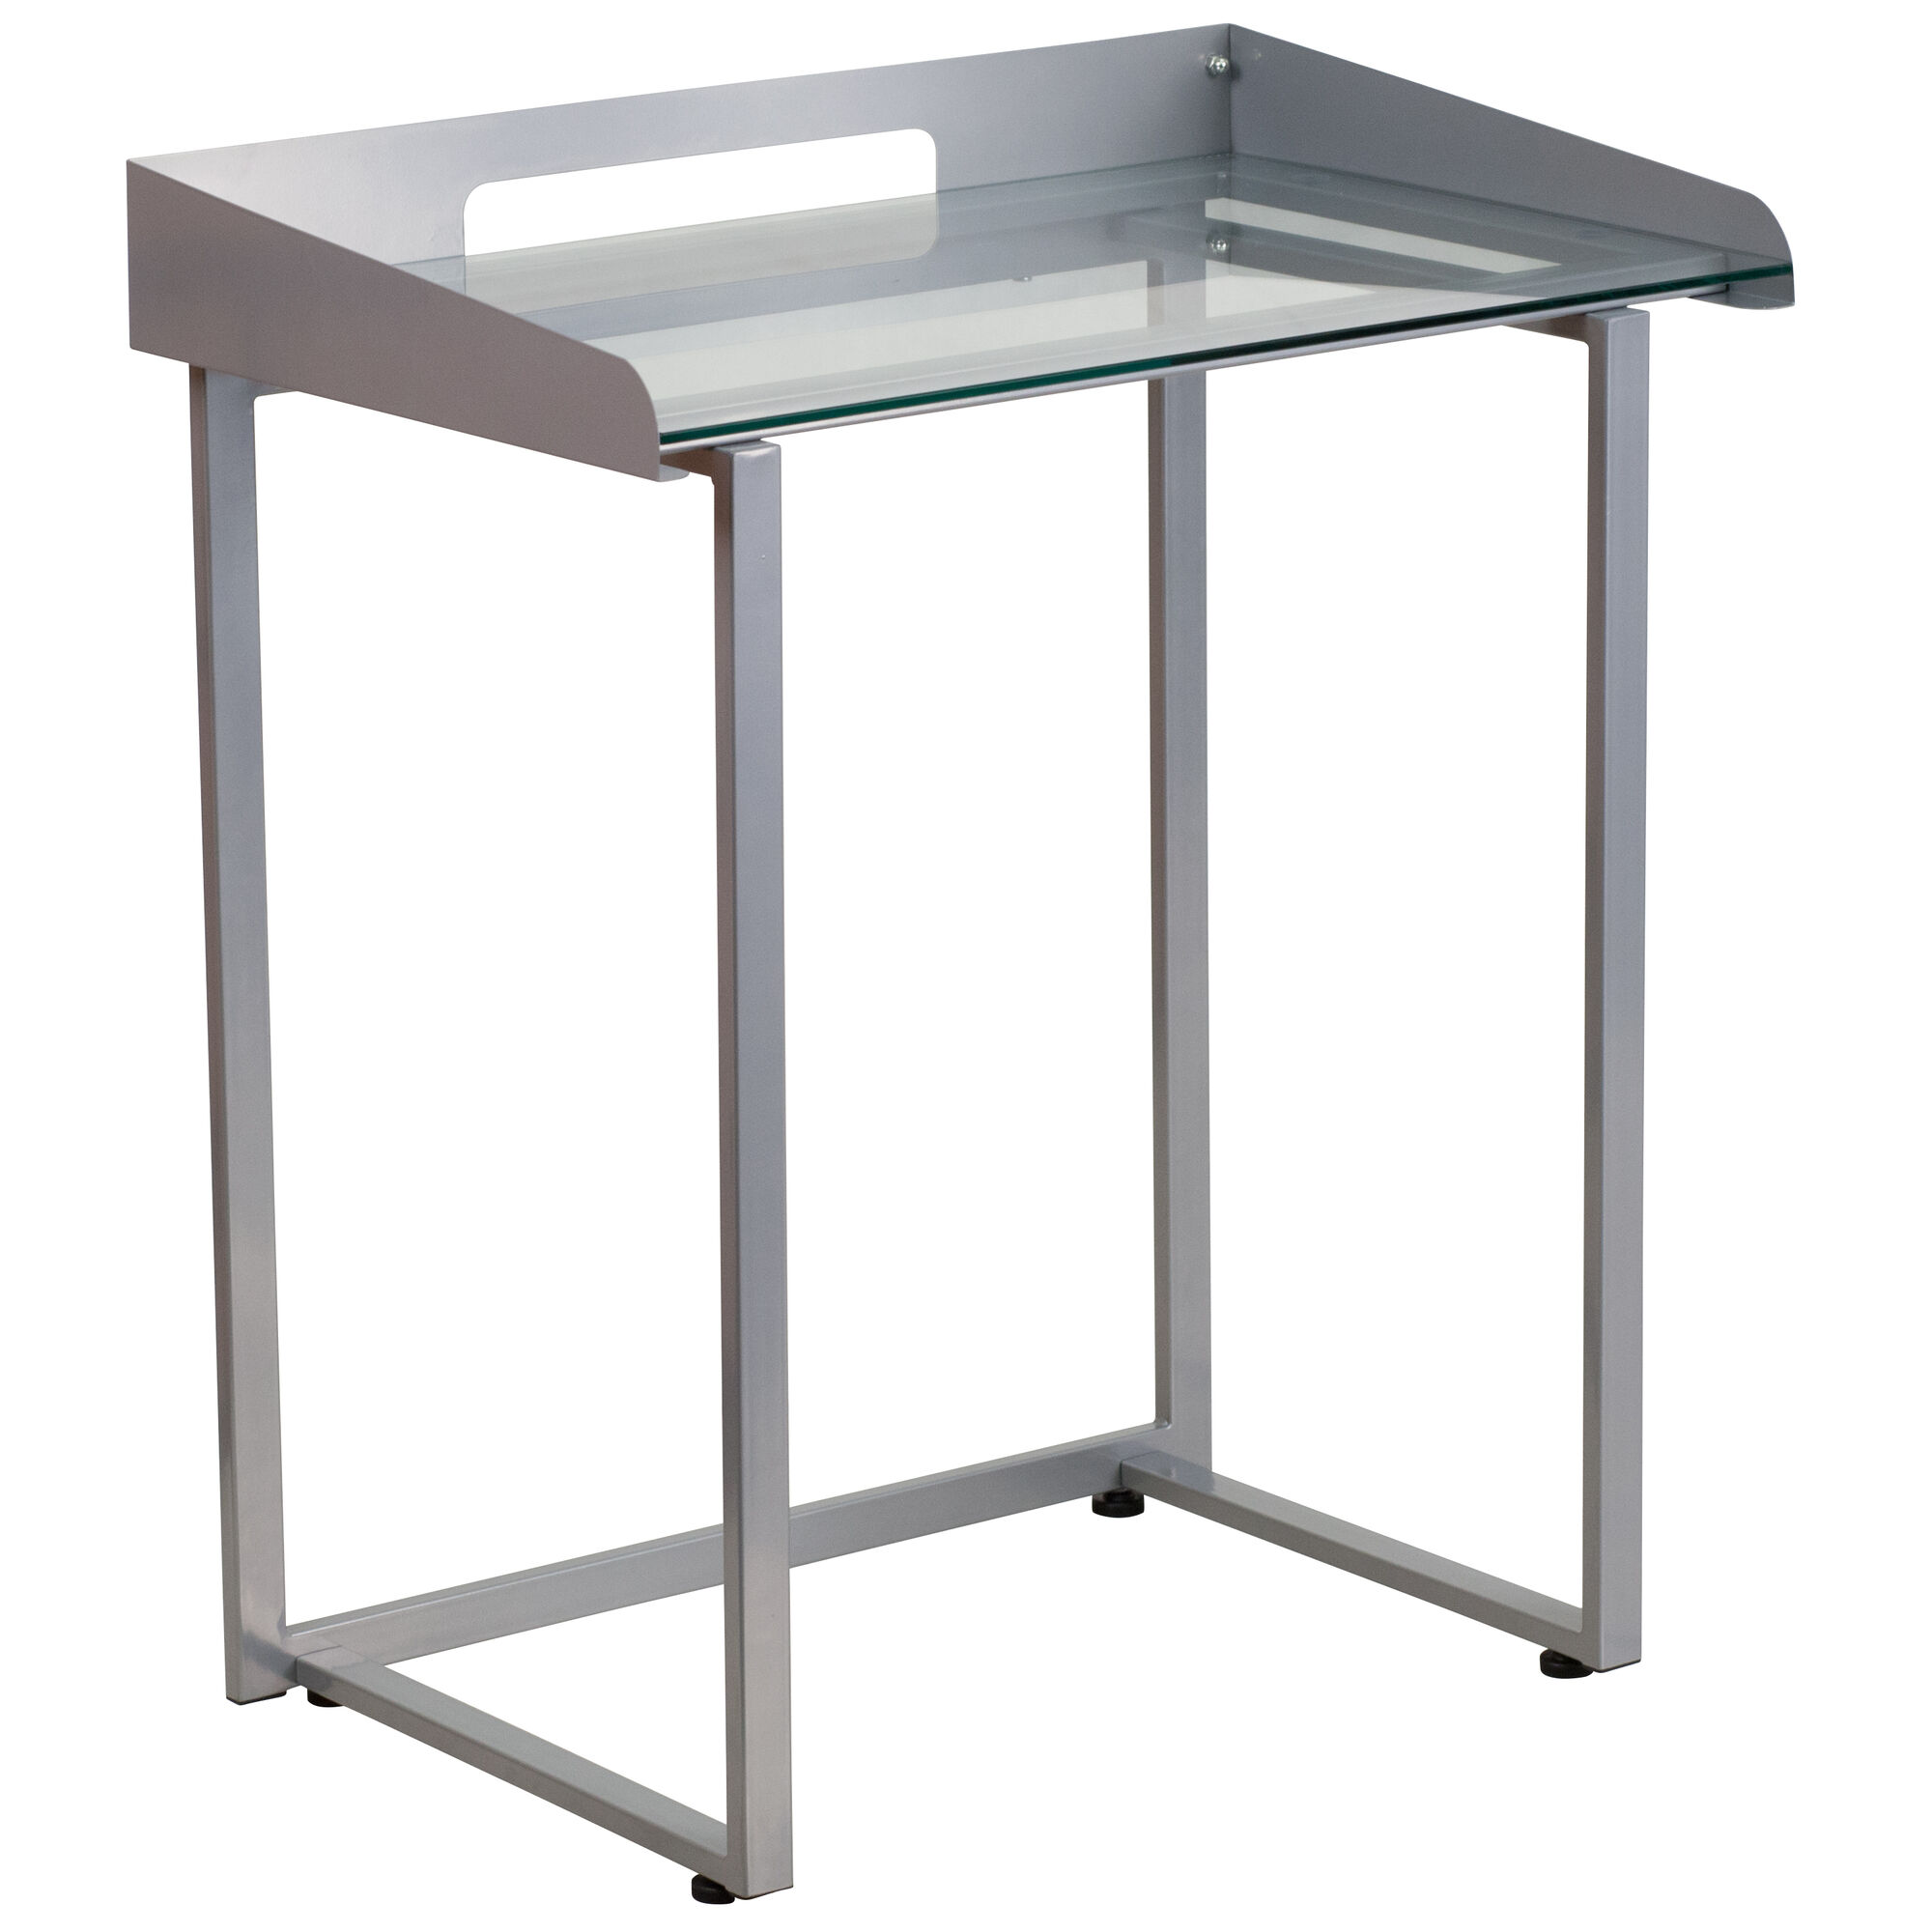 Glass Raised Border Desk NAN YLCD1234 GG